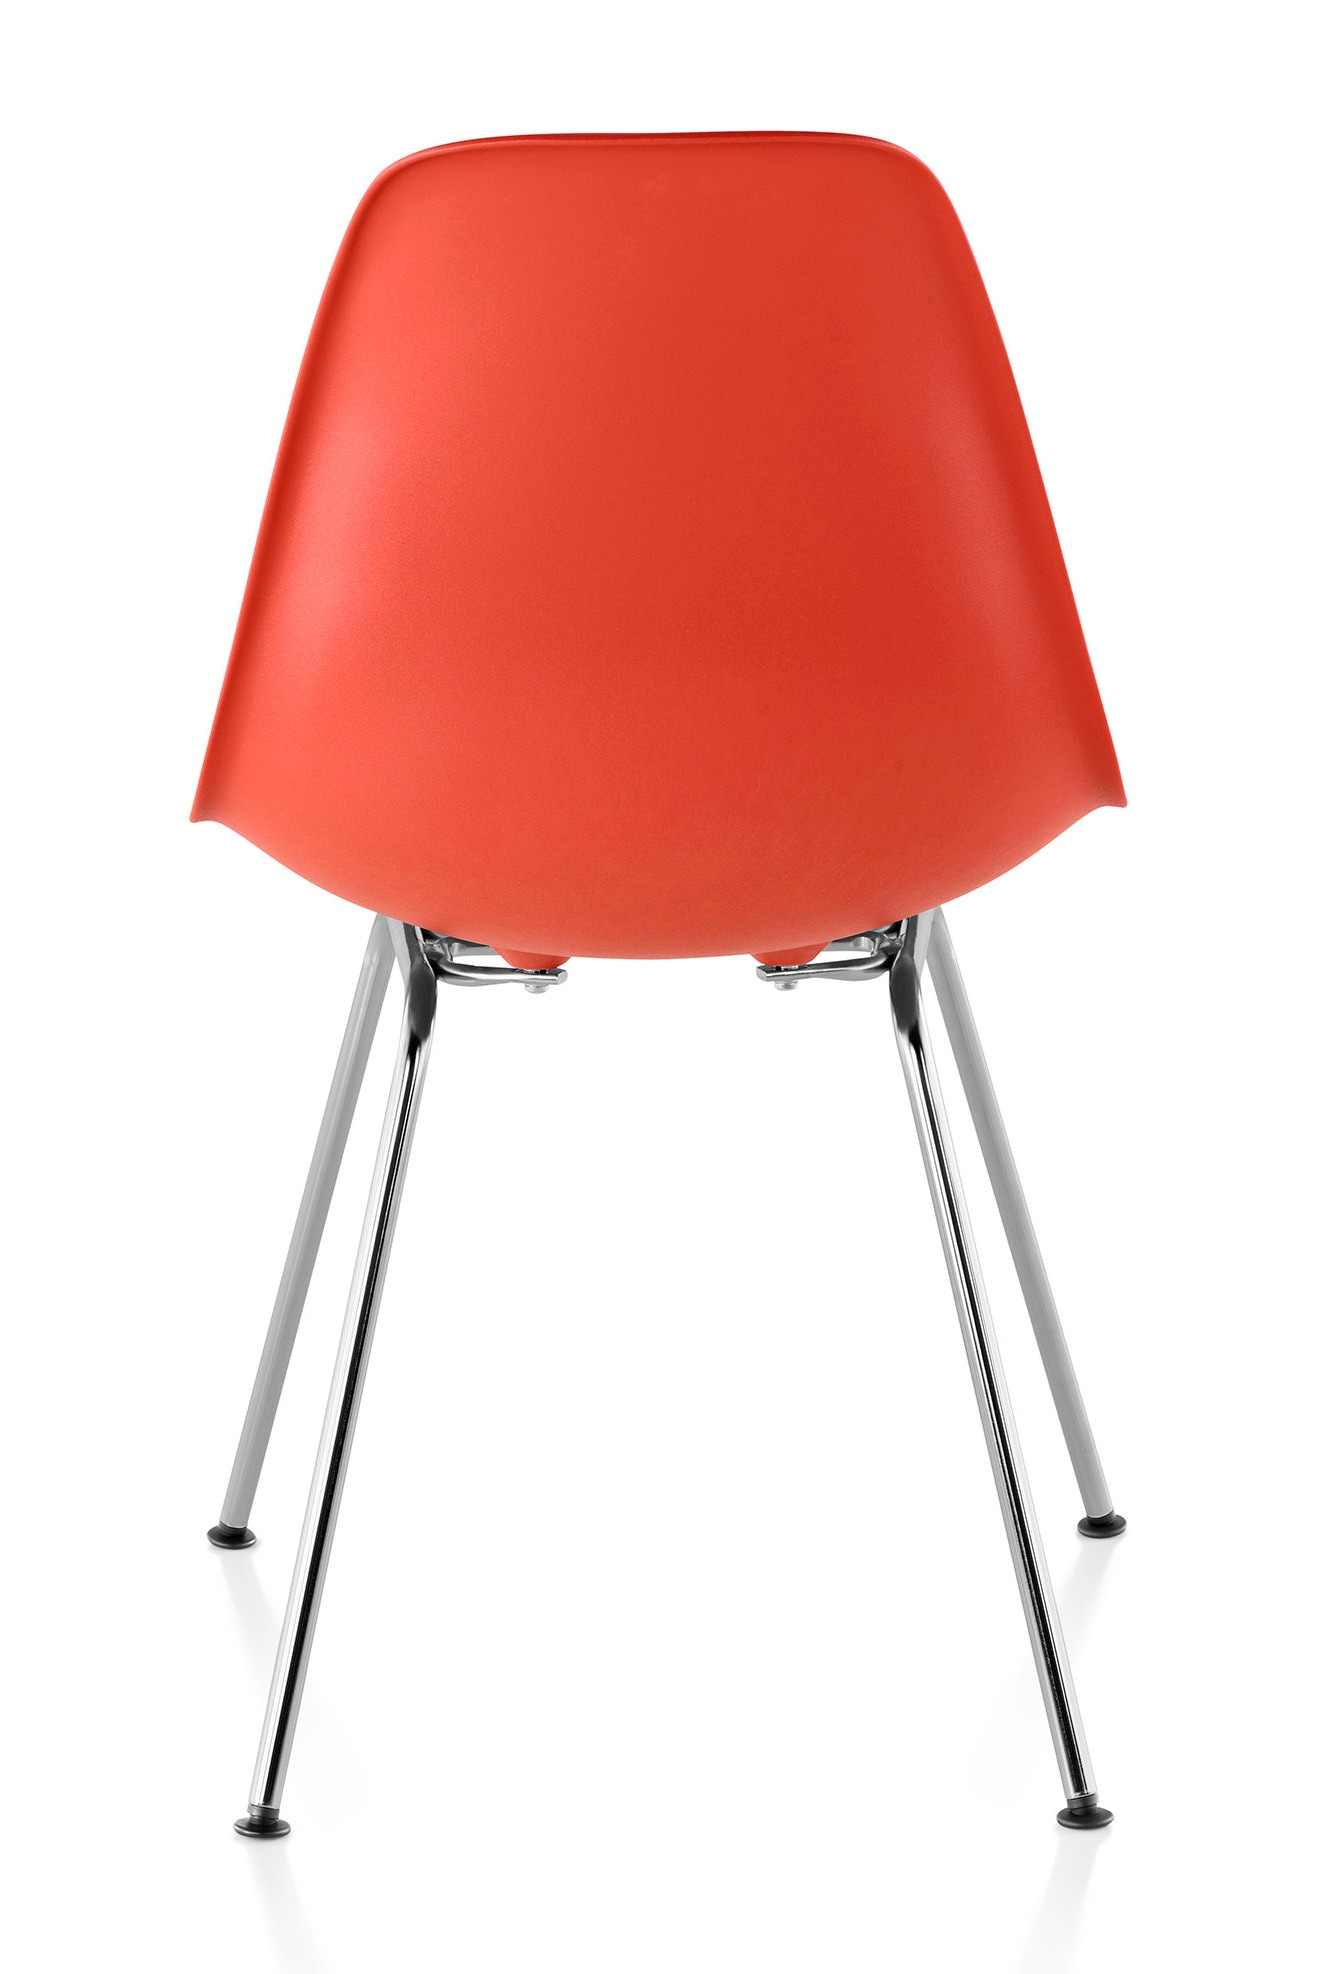 Herman Miller Eames Molded Plastic Side Chair GR Shop